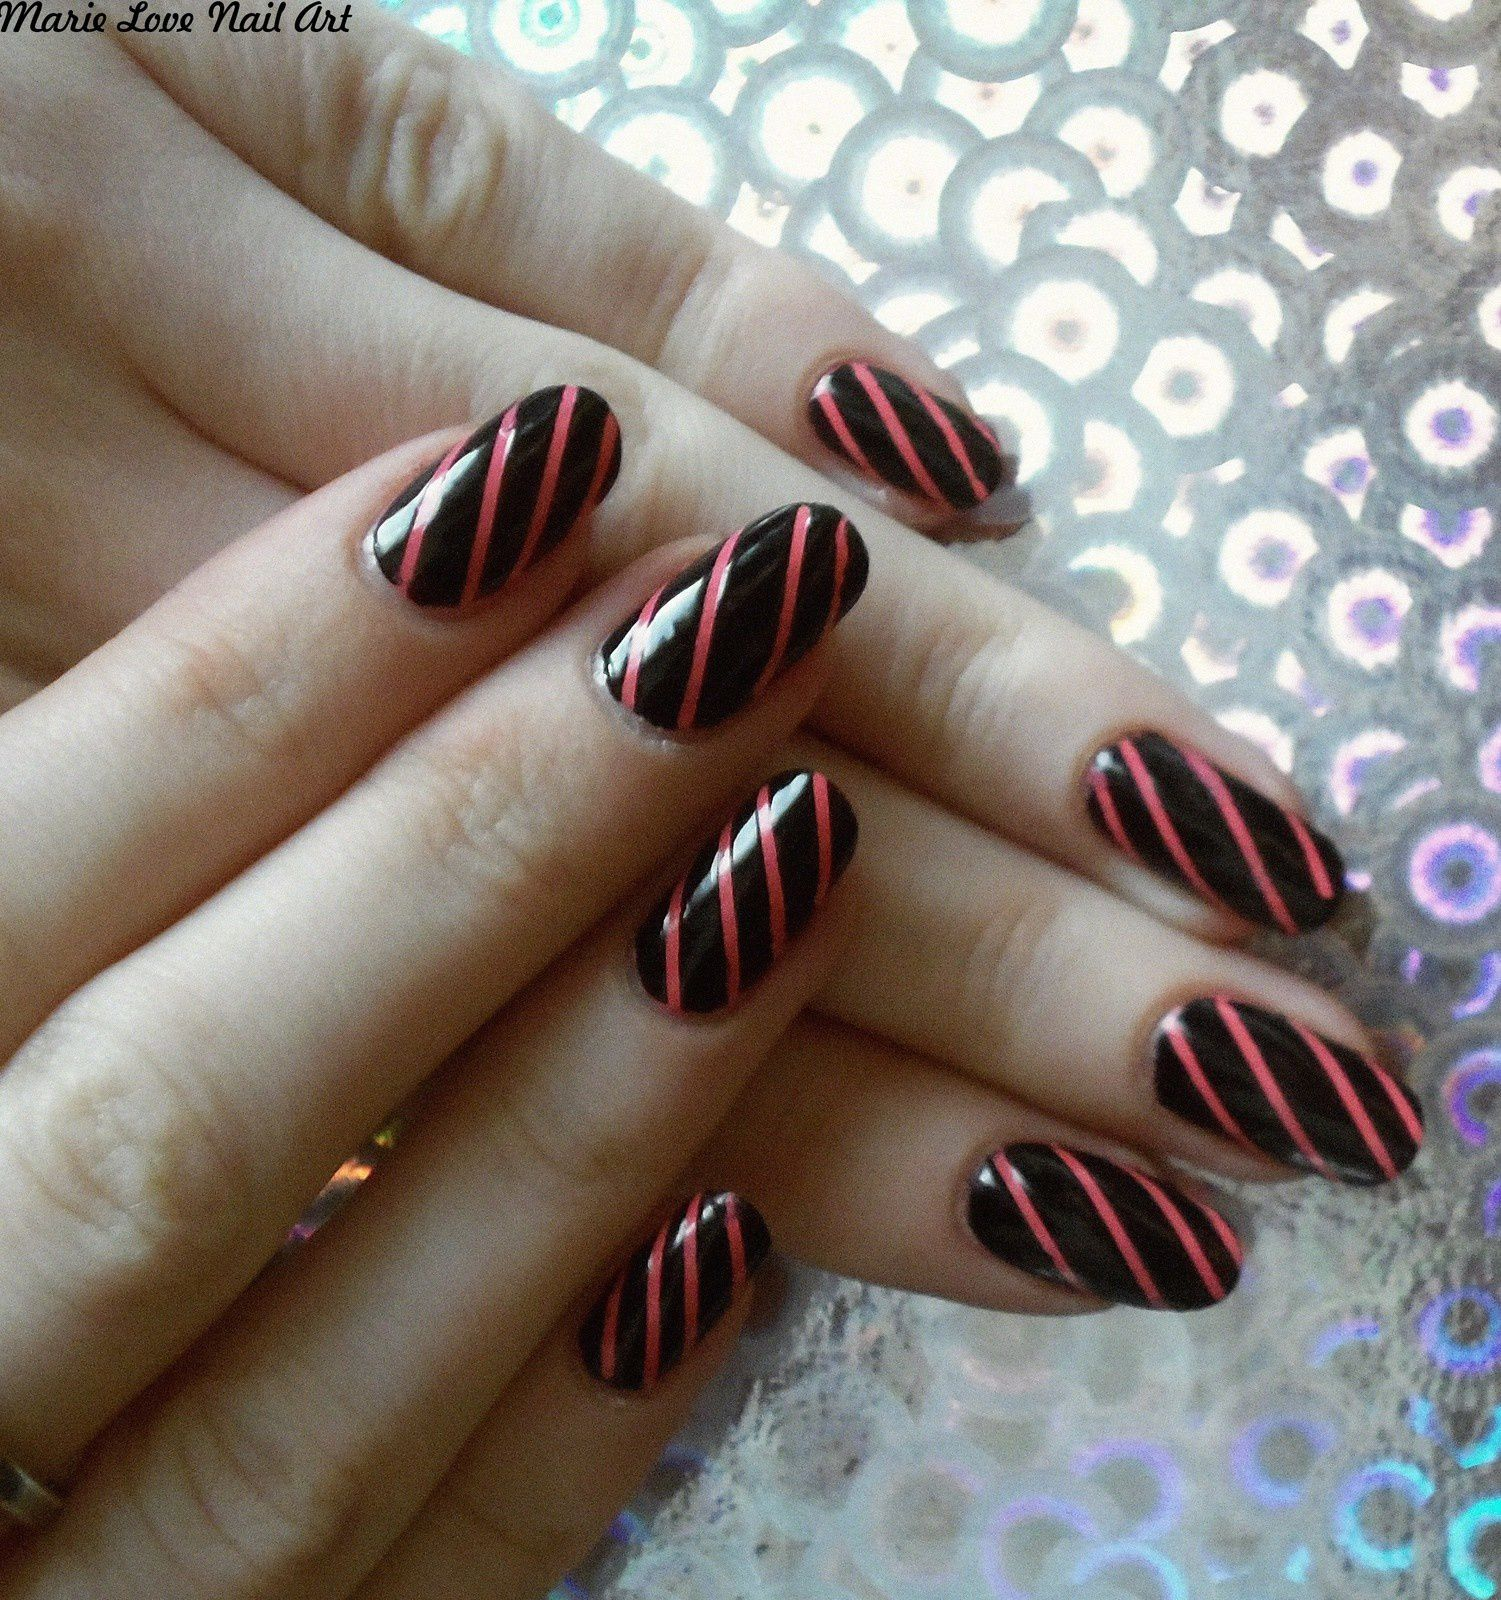 Nail art stipping tape